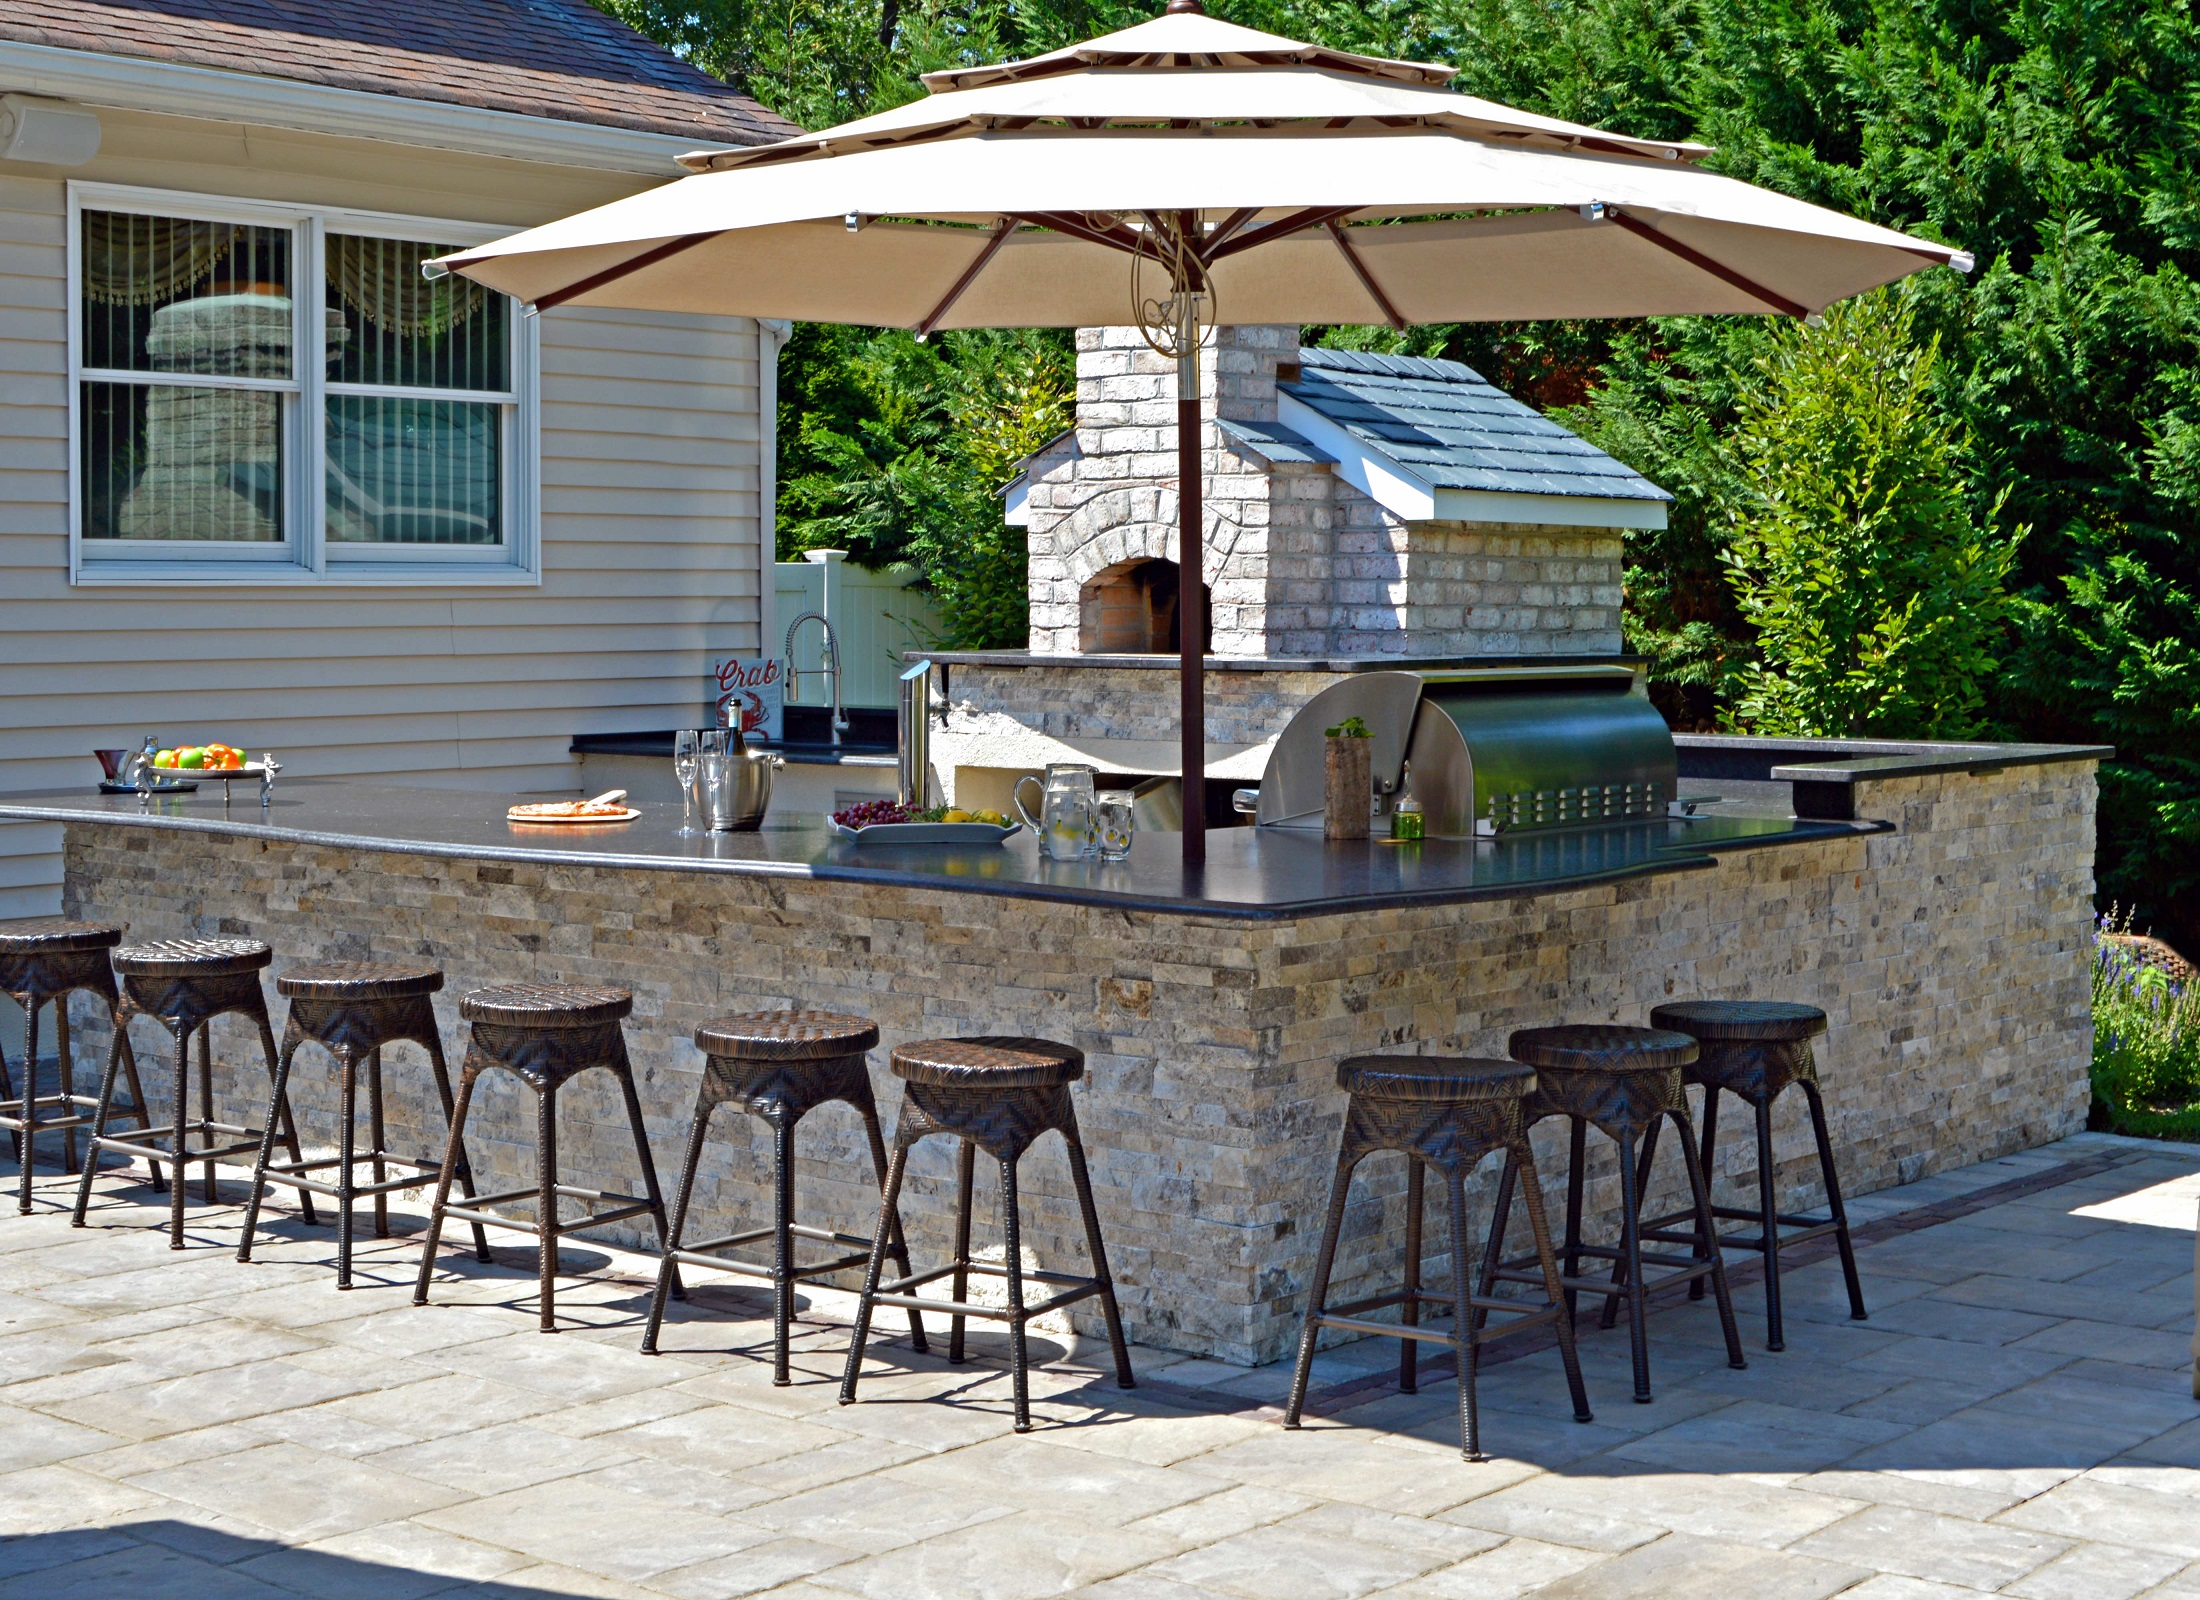 Outdoor kitchen landscape design in Hauppauge, NY